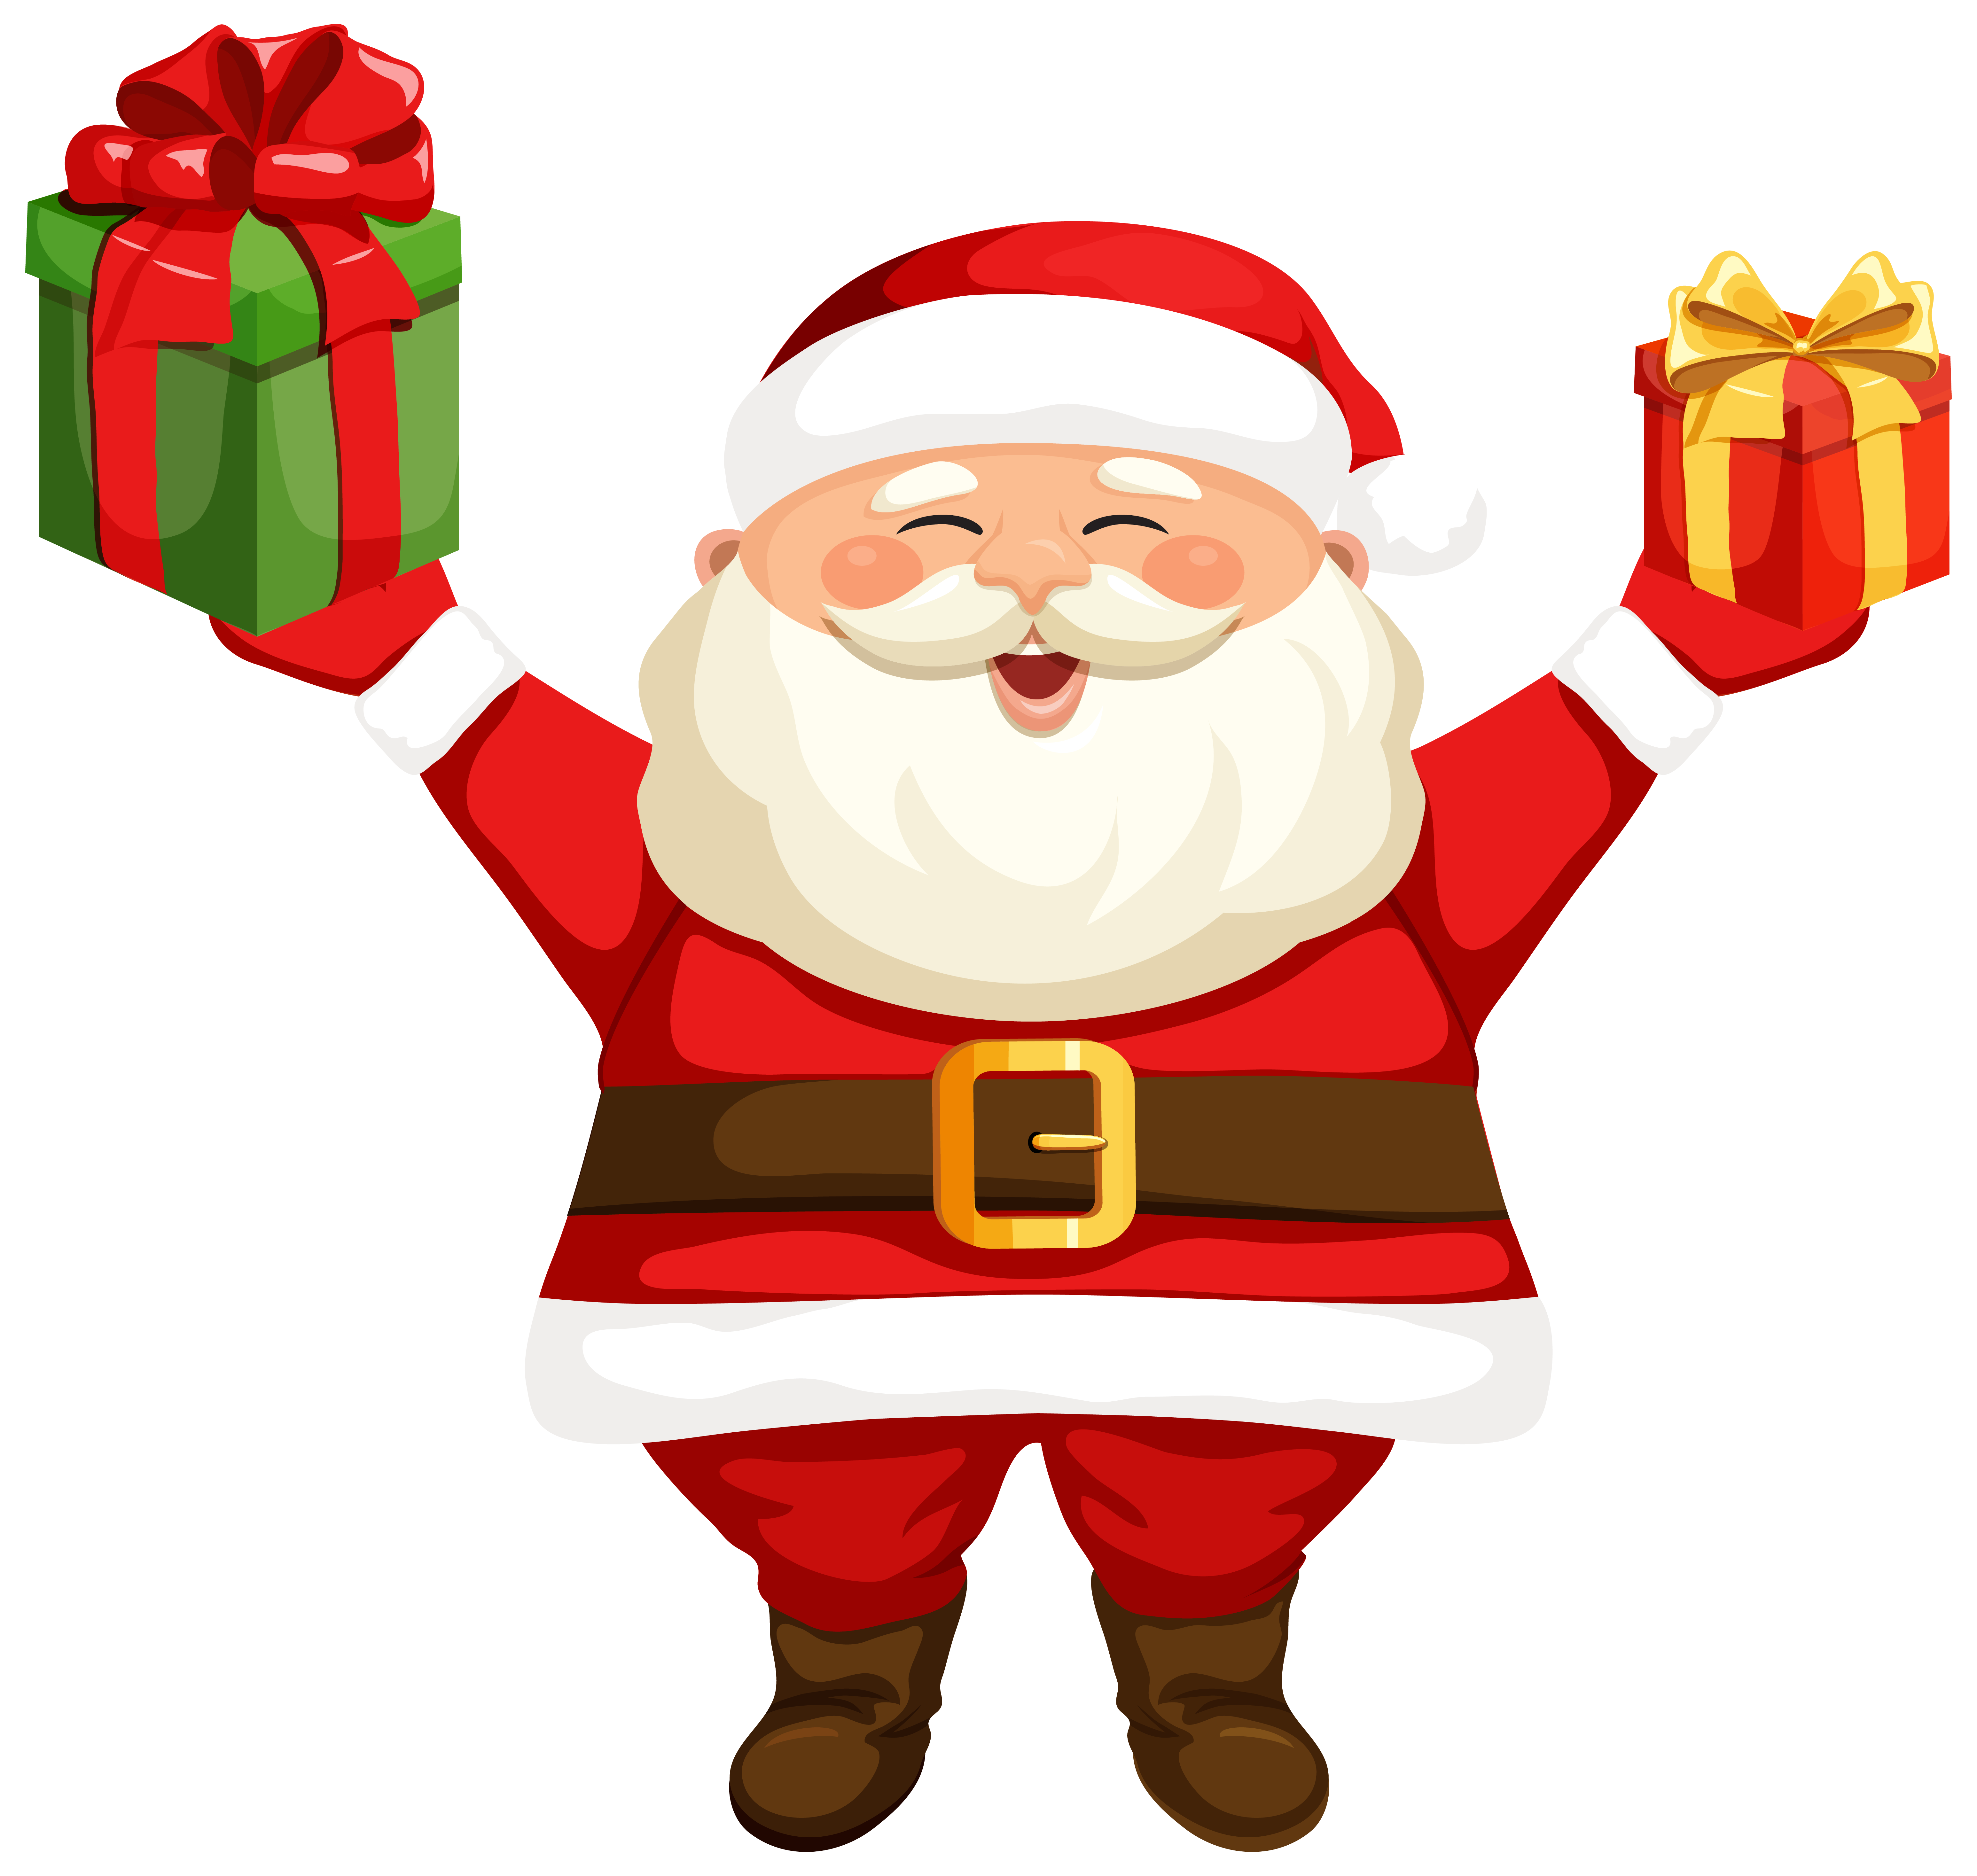 Santa Claus with Gifts PNG Clipart Image.